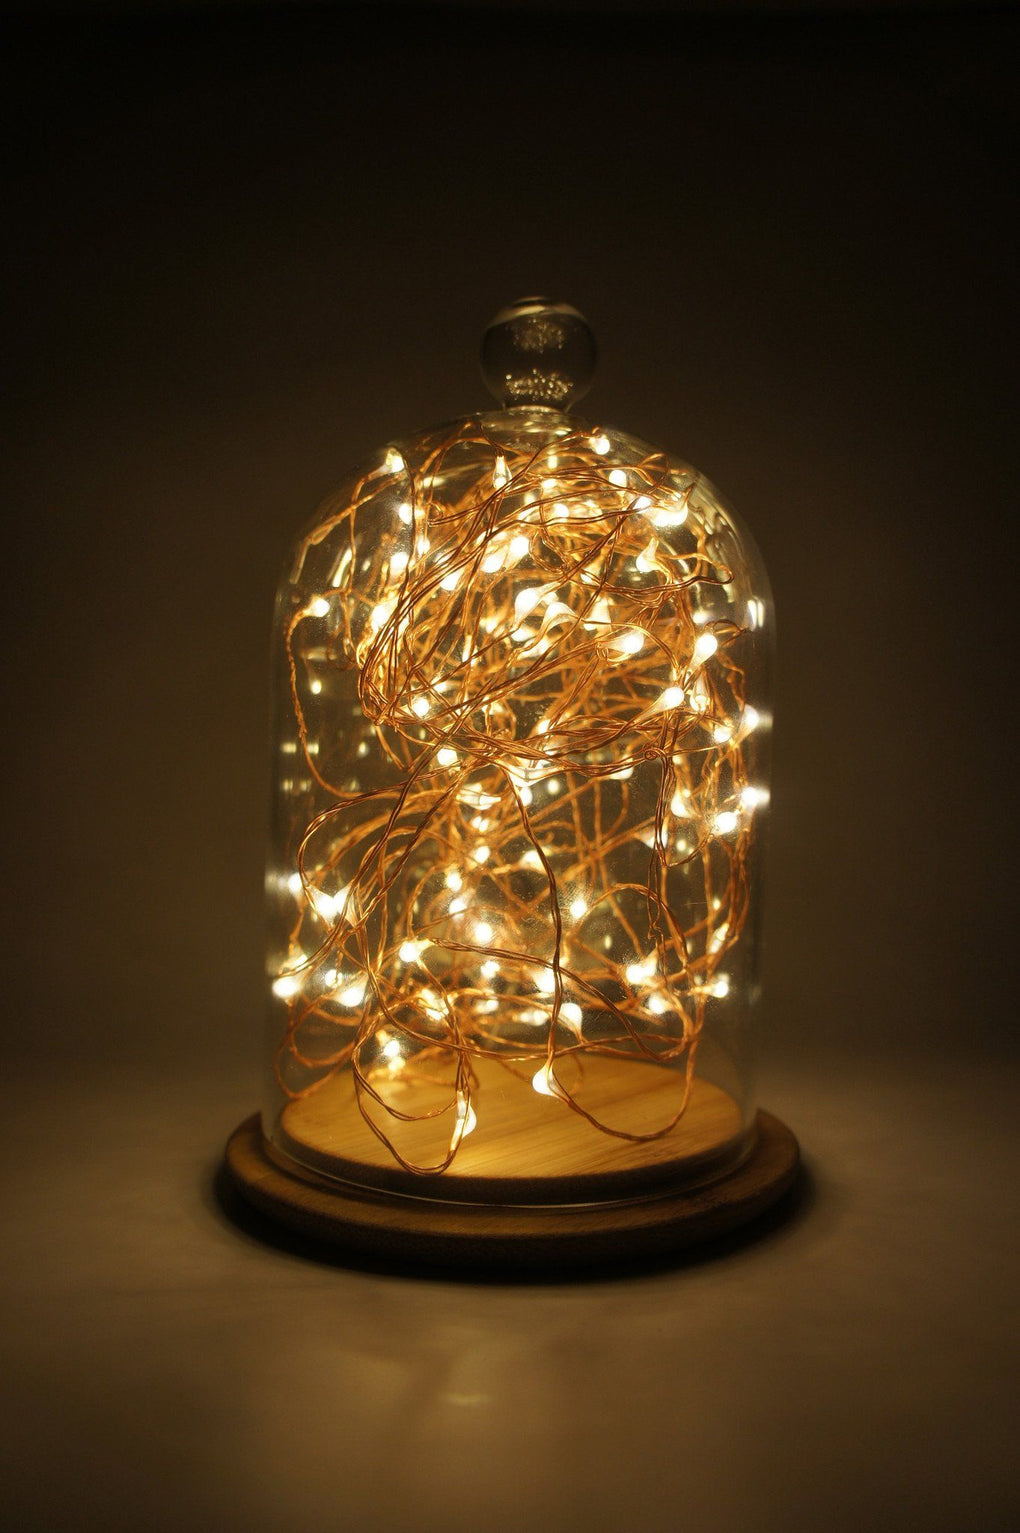 Bell Jar (No Fairy Lights Included) Home Decor Midnight Sparks